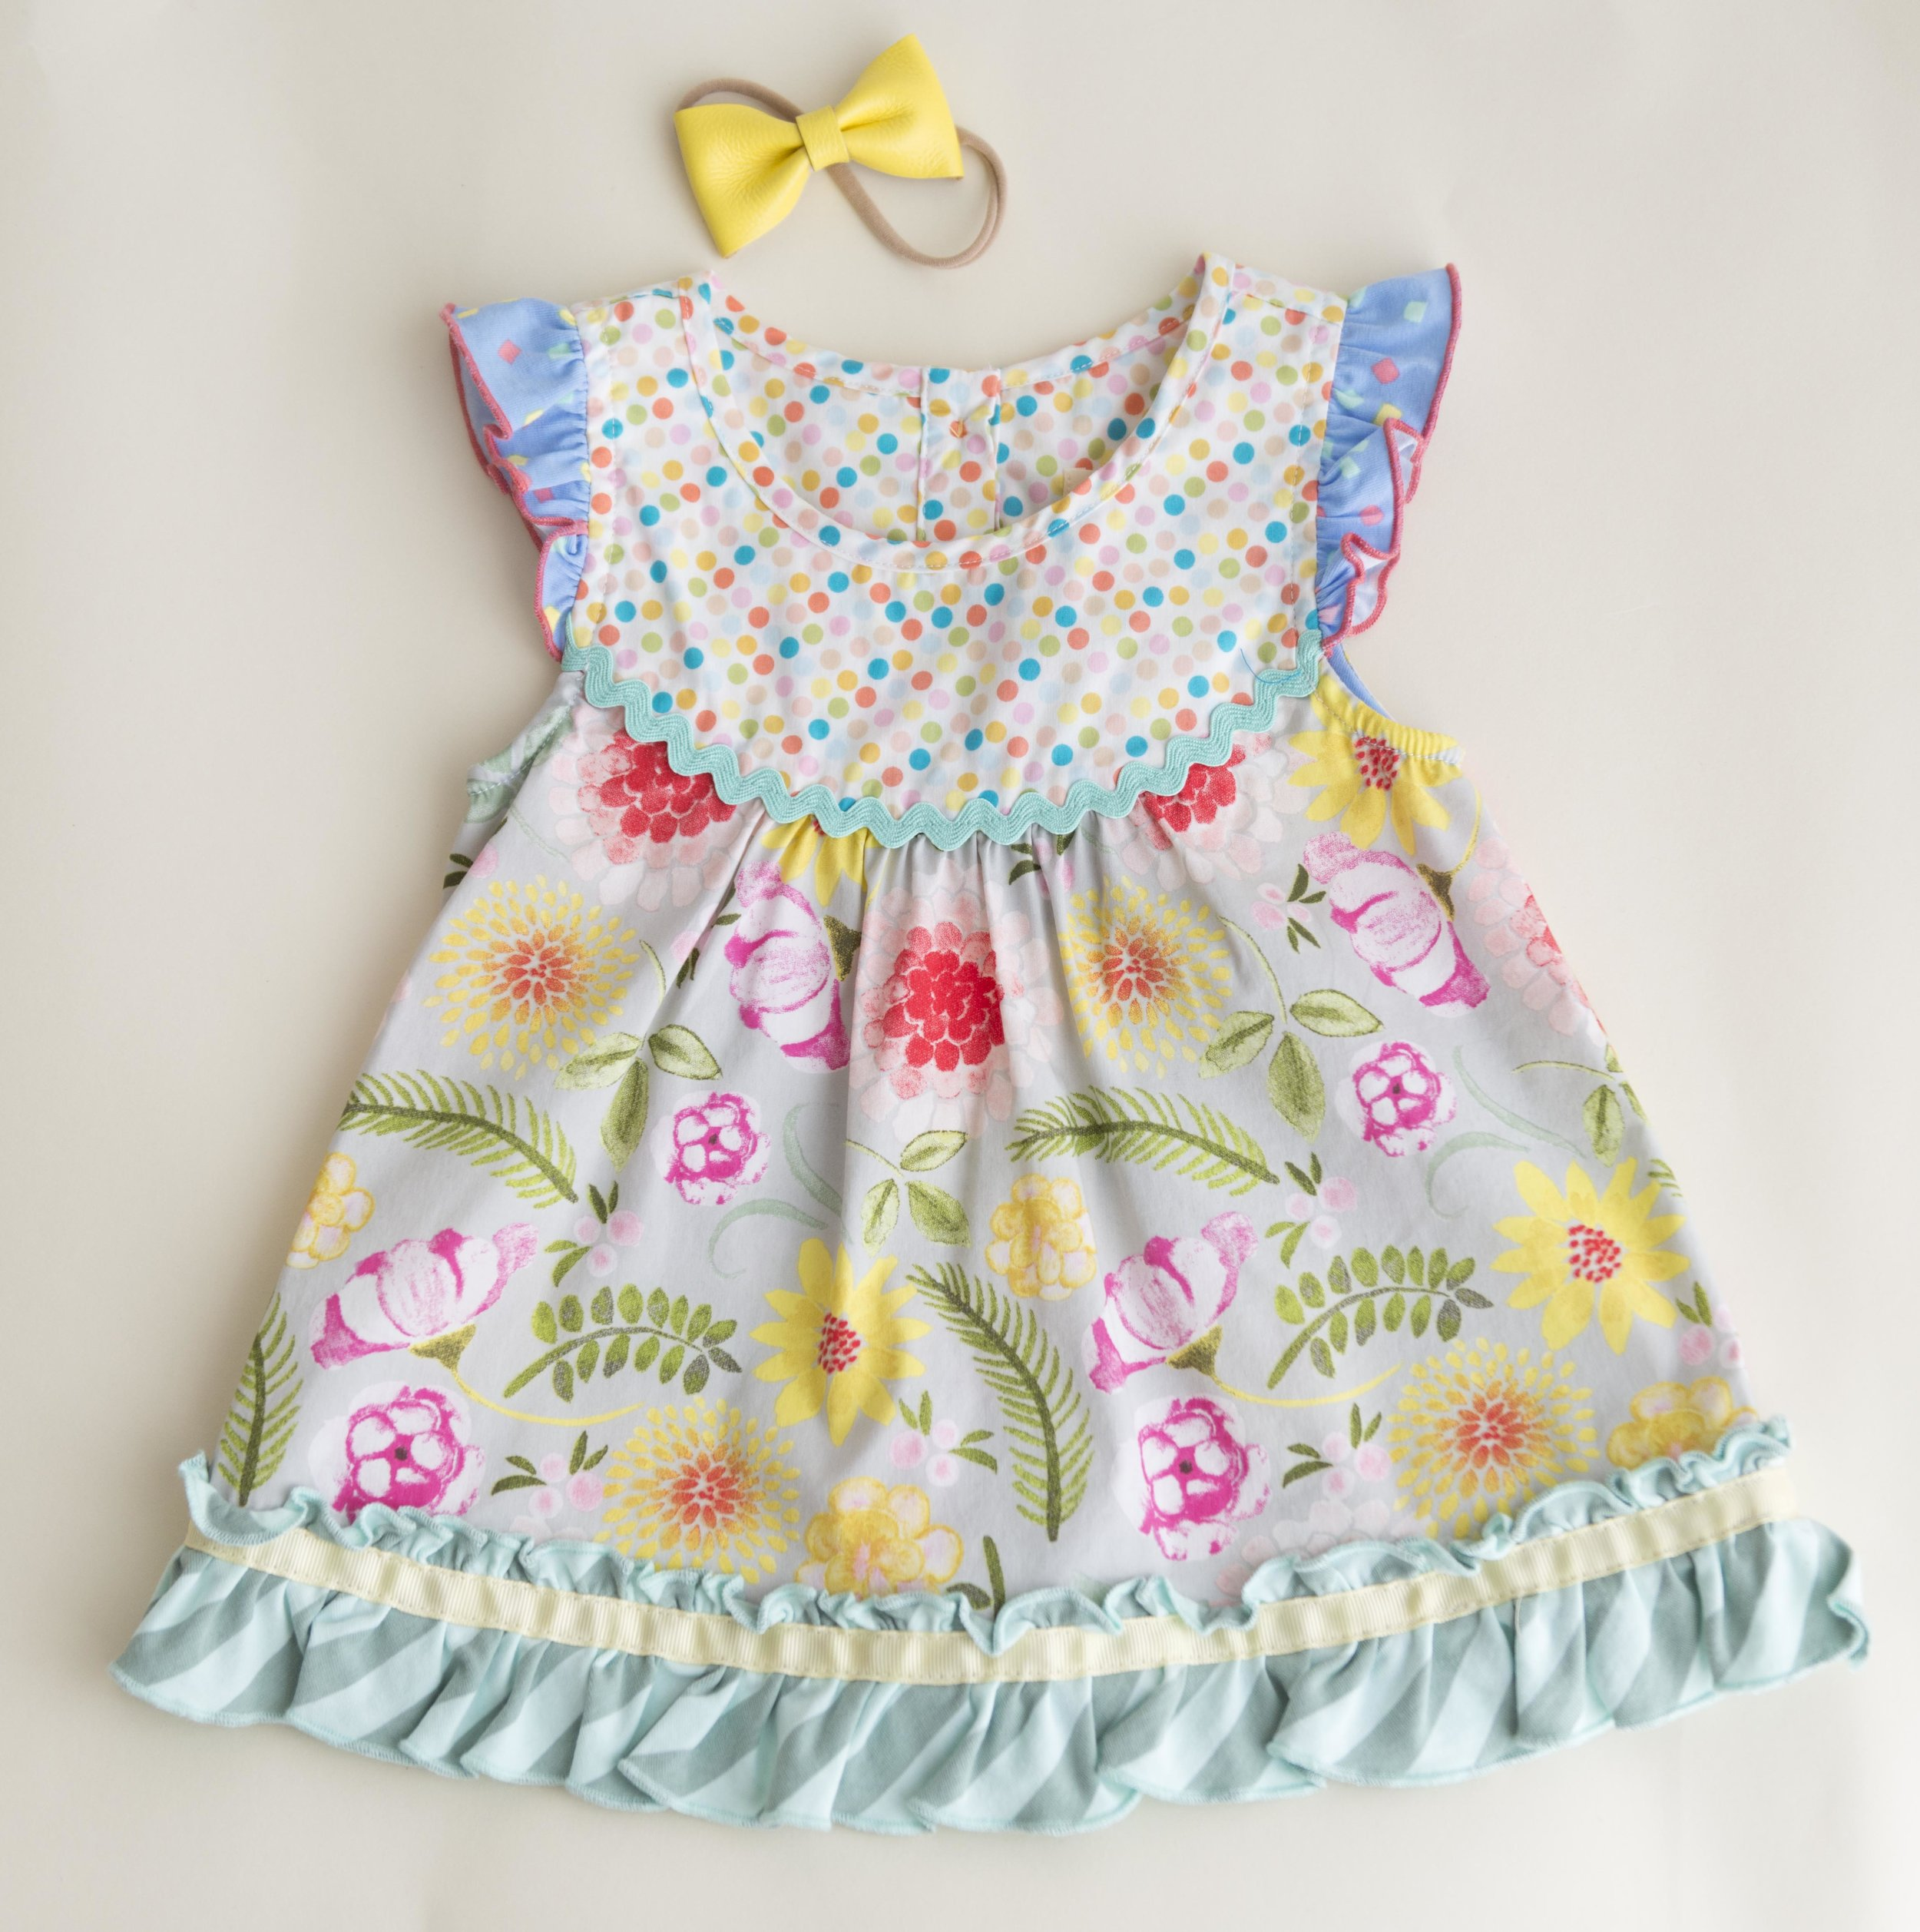 We have several darling Matilda Jane Clothing dresses and rompers with beautiful matching bows in our studio for your use.